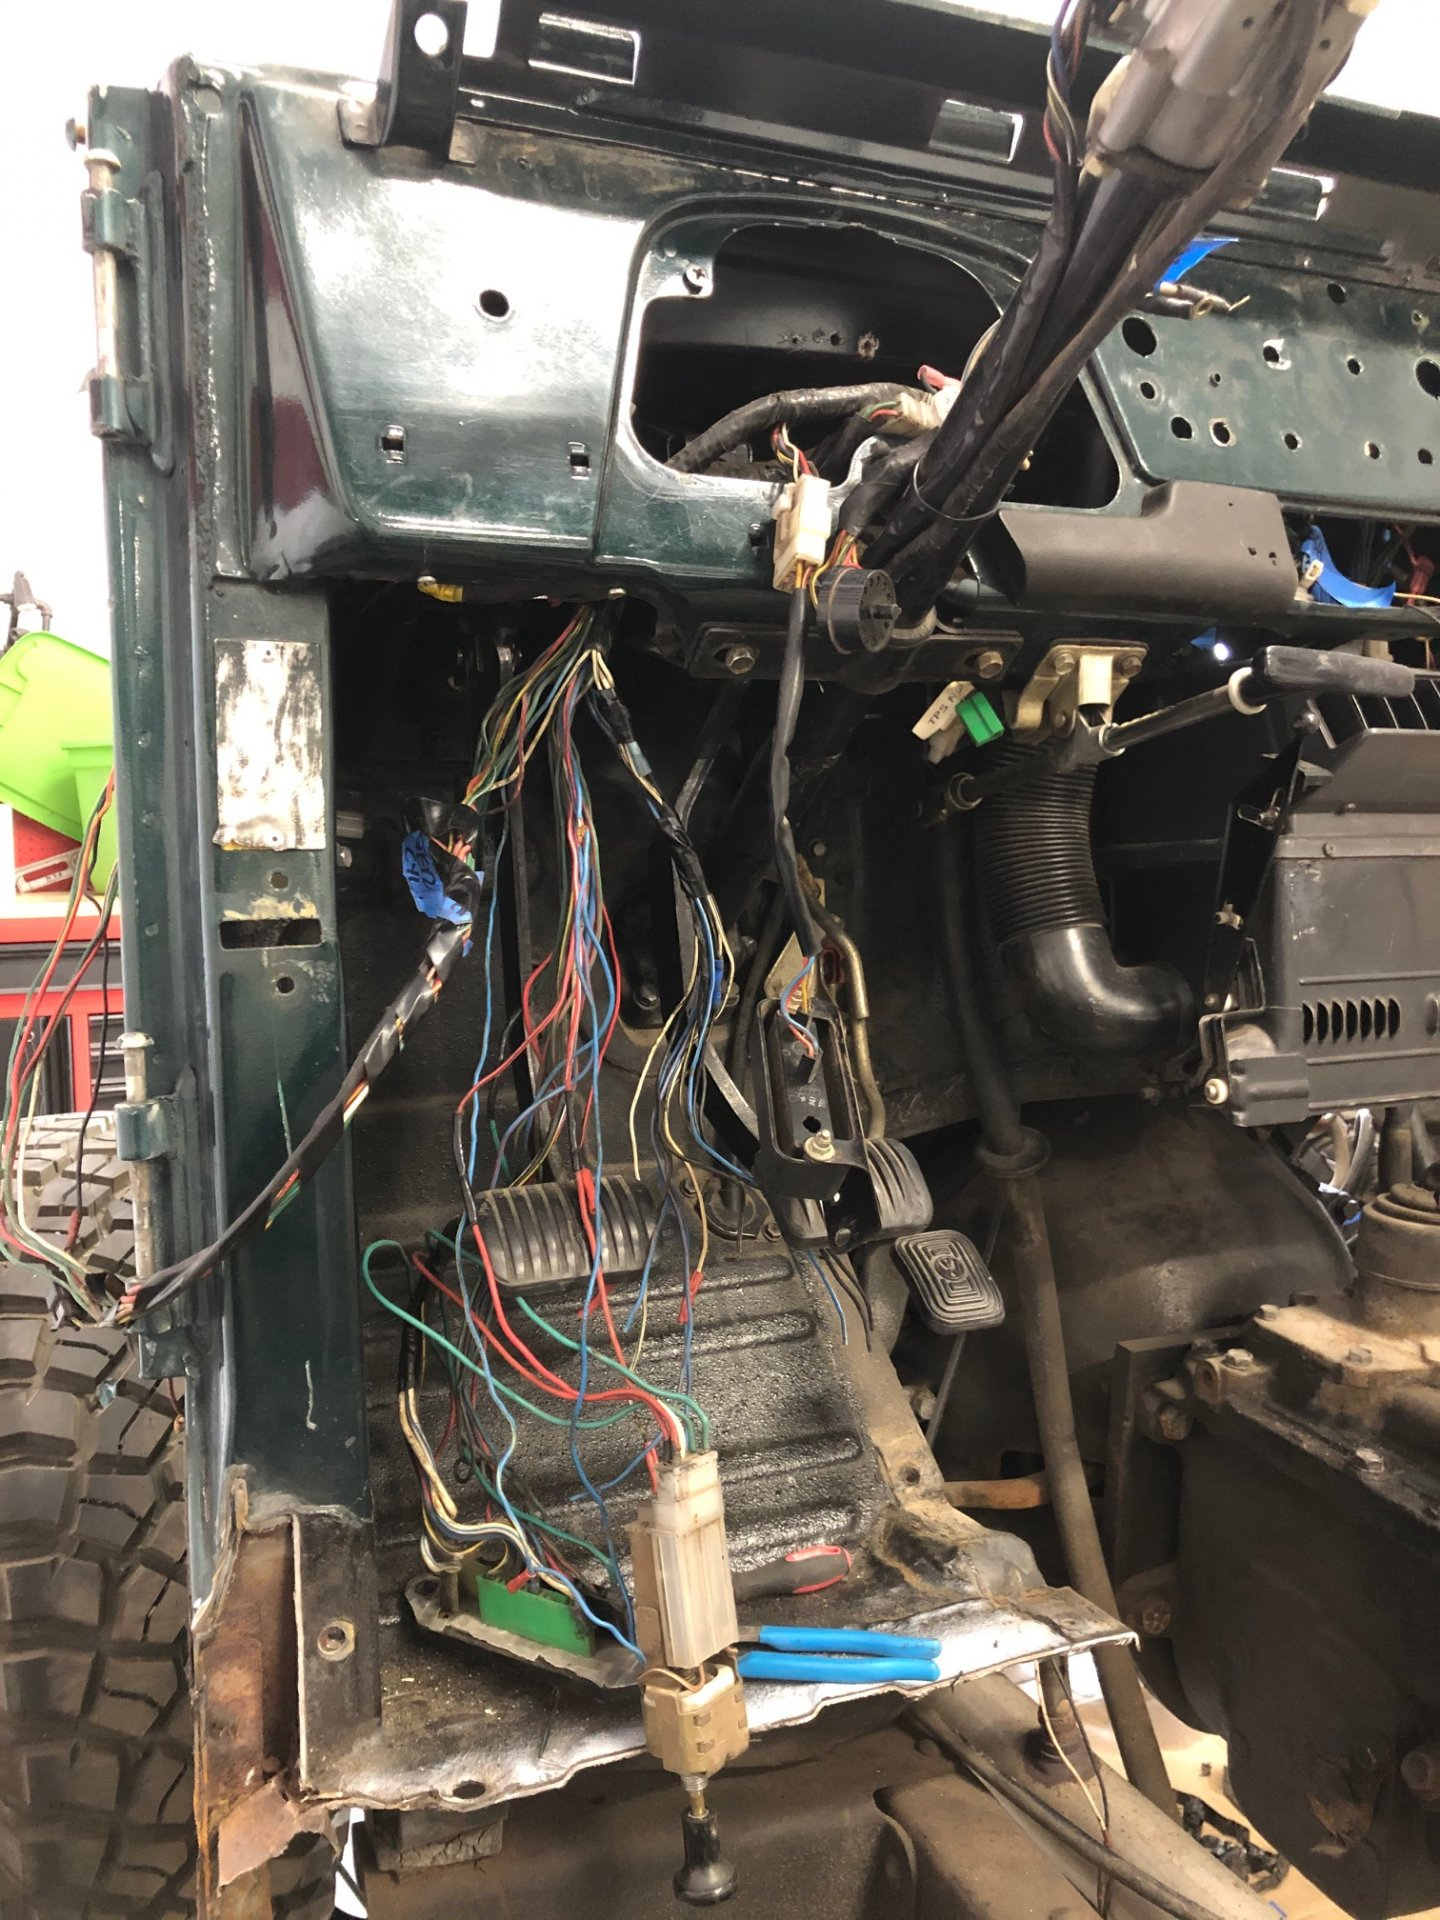 wiring coming out.jpg